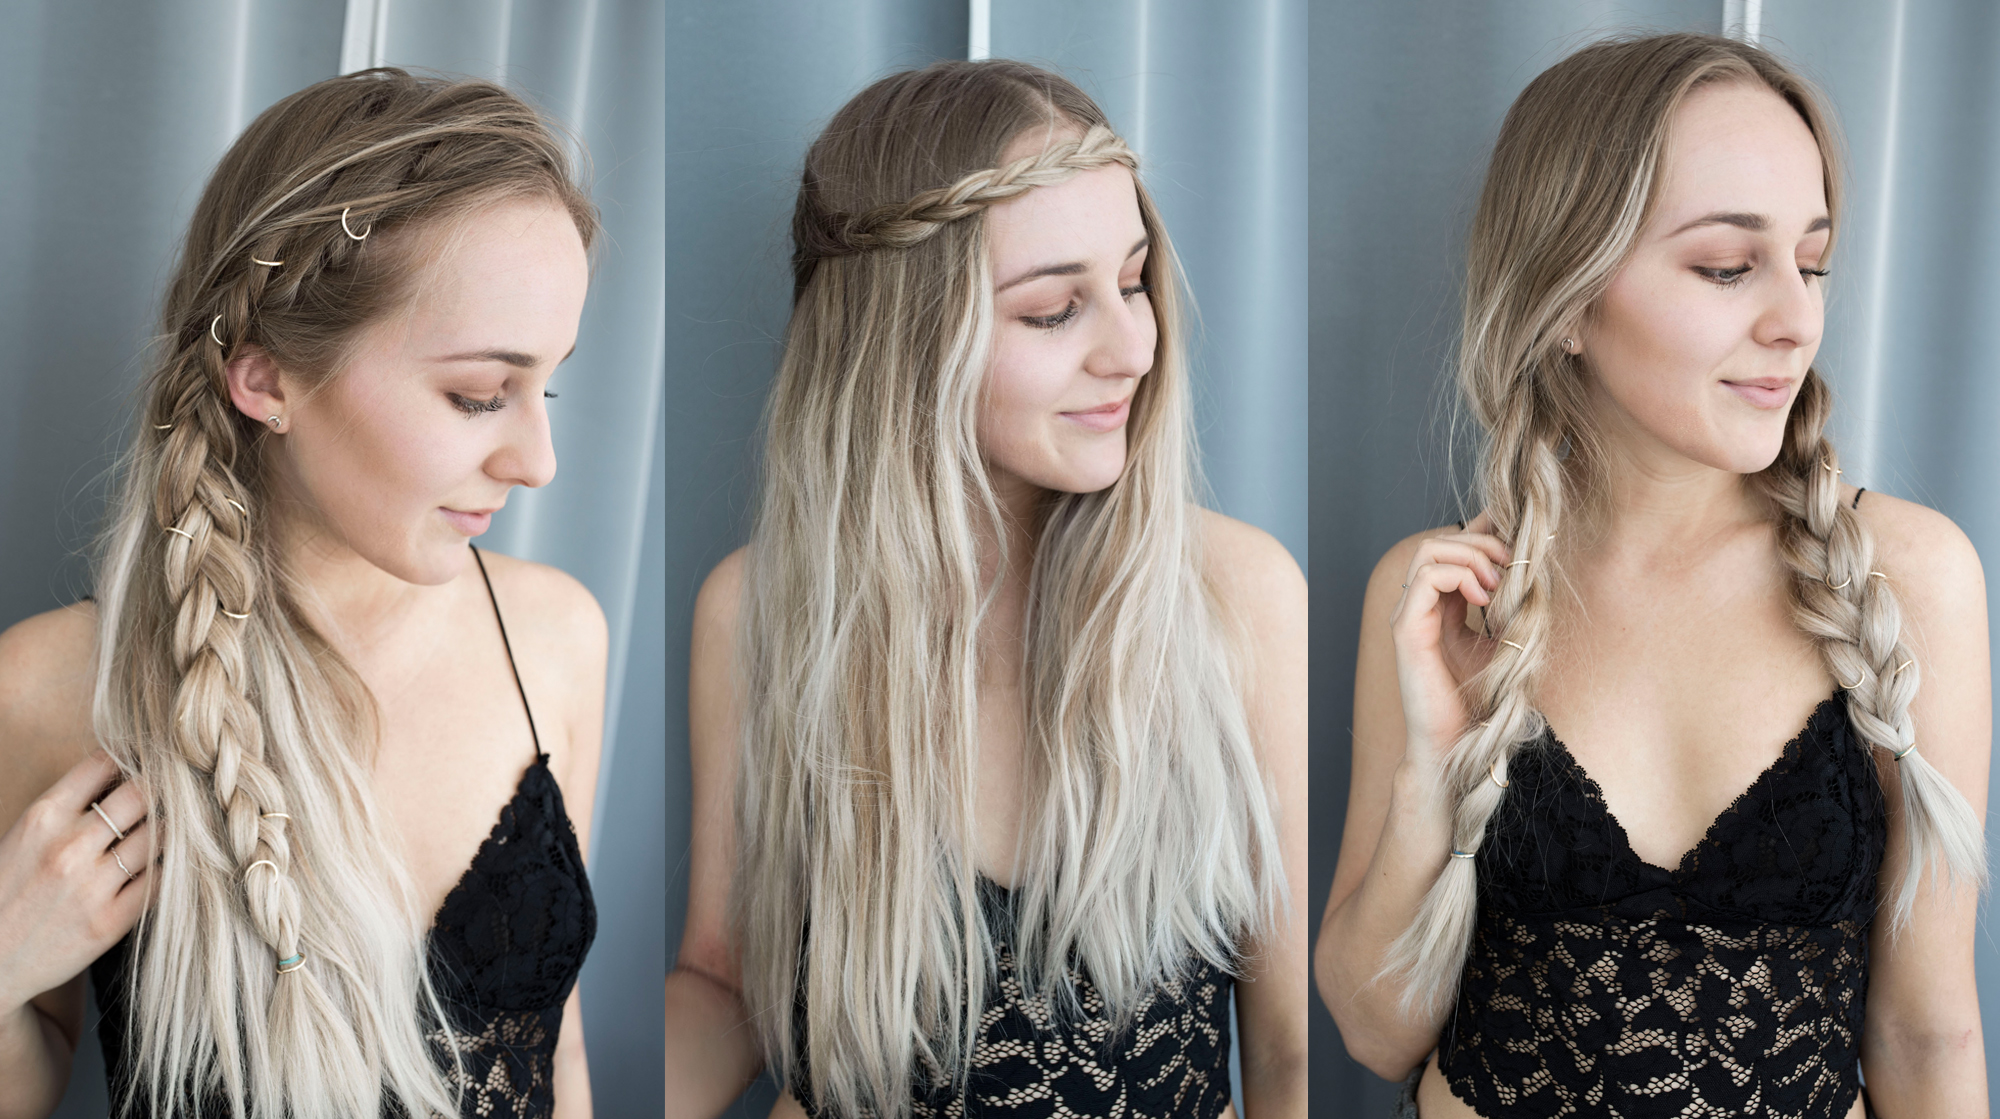 Phenomenal Three Easy Hairstyles For Summer Tiphaine Marie Switzerland Hairstyle Inspiration Daily Dogsangcom